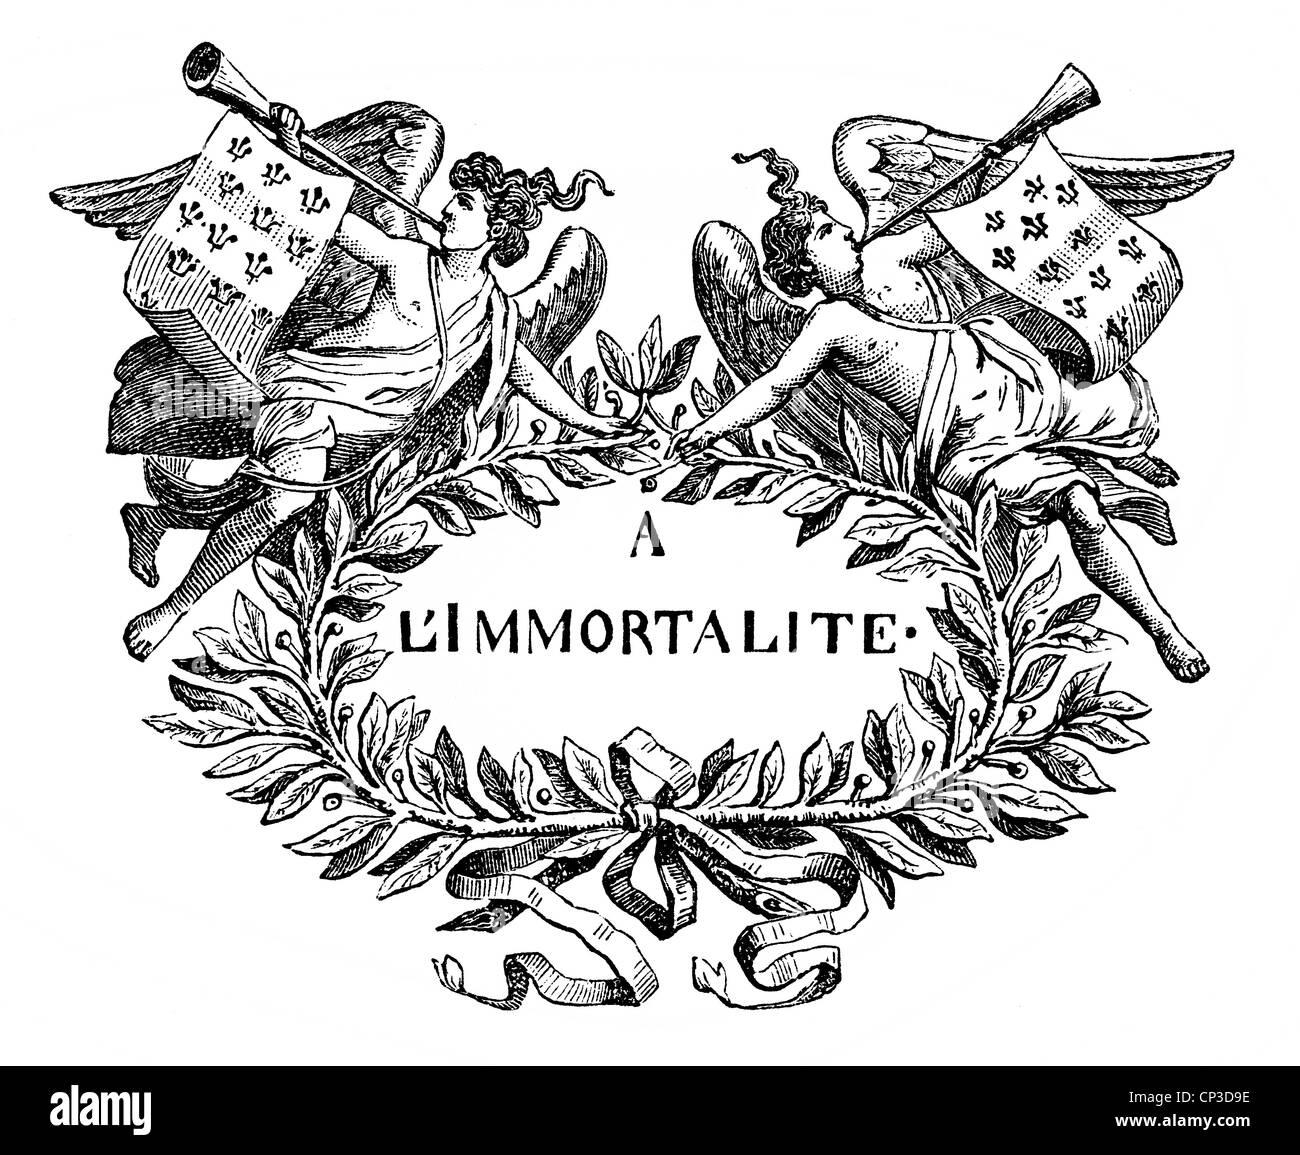 À l'immortalité or To Immortality, the motto of the French academic society Académie française, - Stock Image